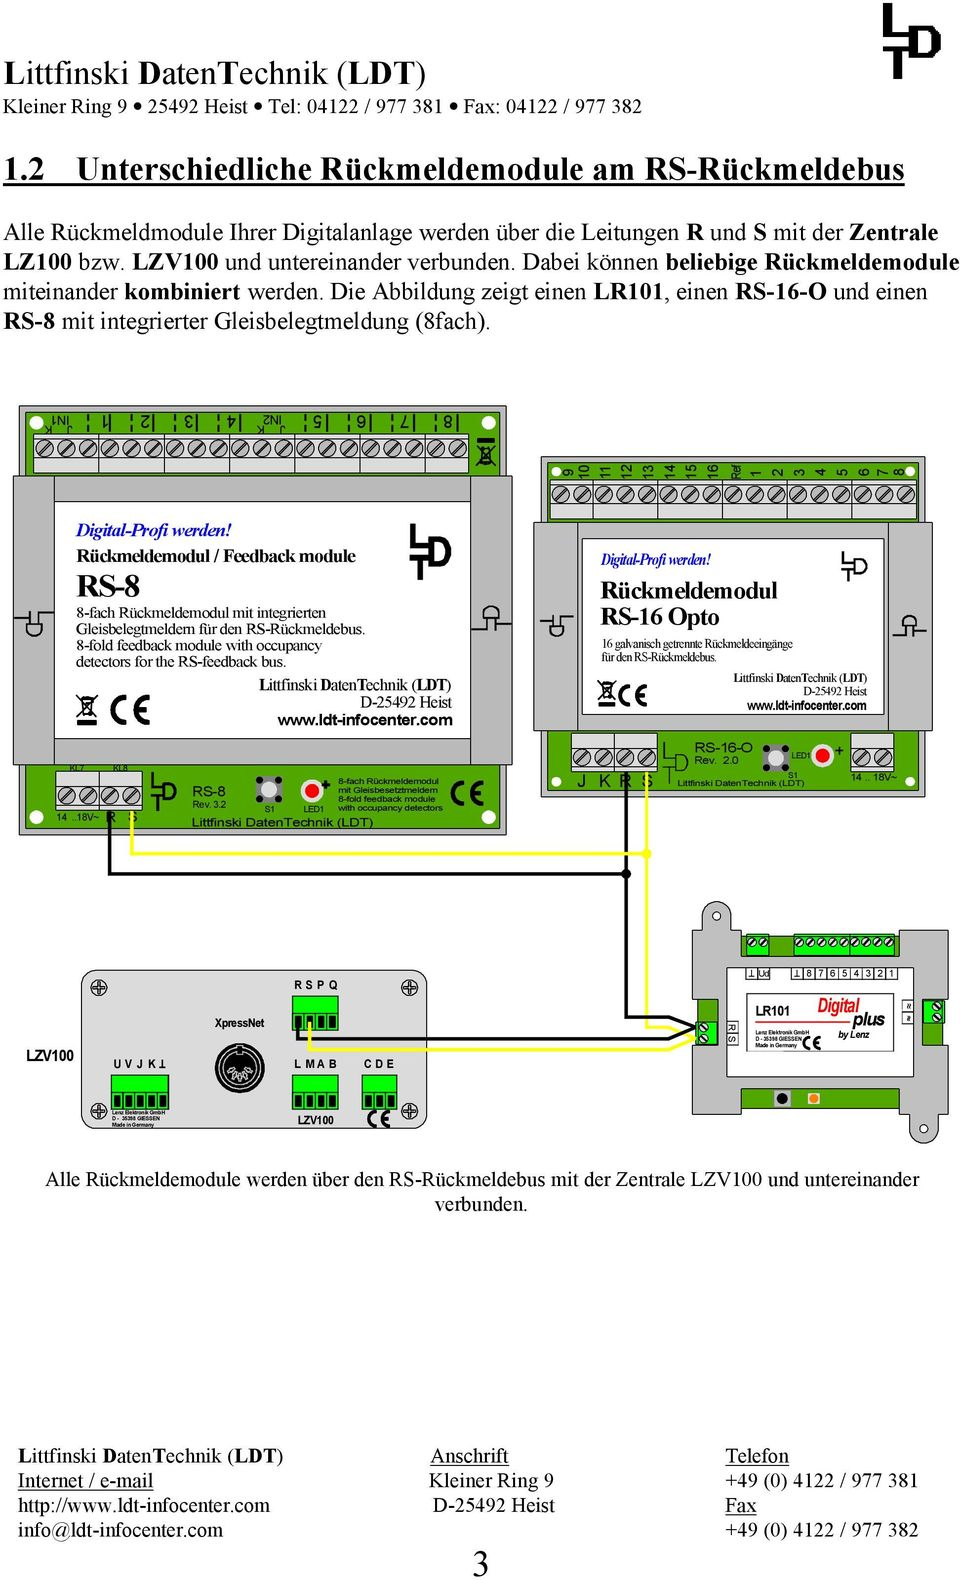 K IN IN K 0 / Feedback module RS- -fach mit integrierten Gleisbelegtmeldern -fold feedback module with occupancy detectors for the RS-feedback bus. KL..V~ KL R S -fach RS- mit Gleisbesetztmeldern Rev.